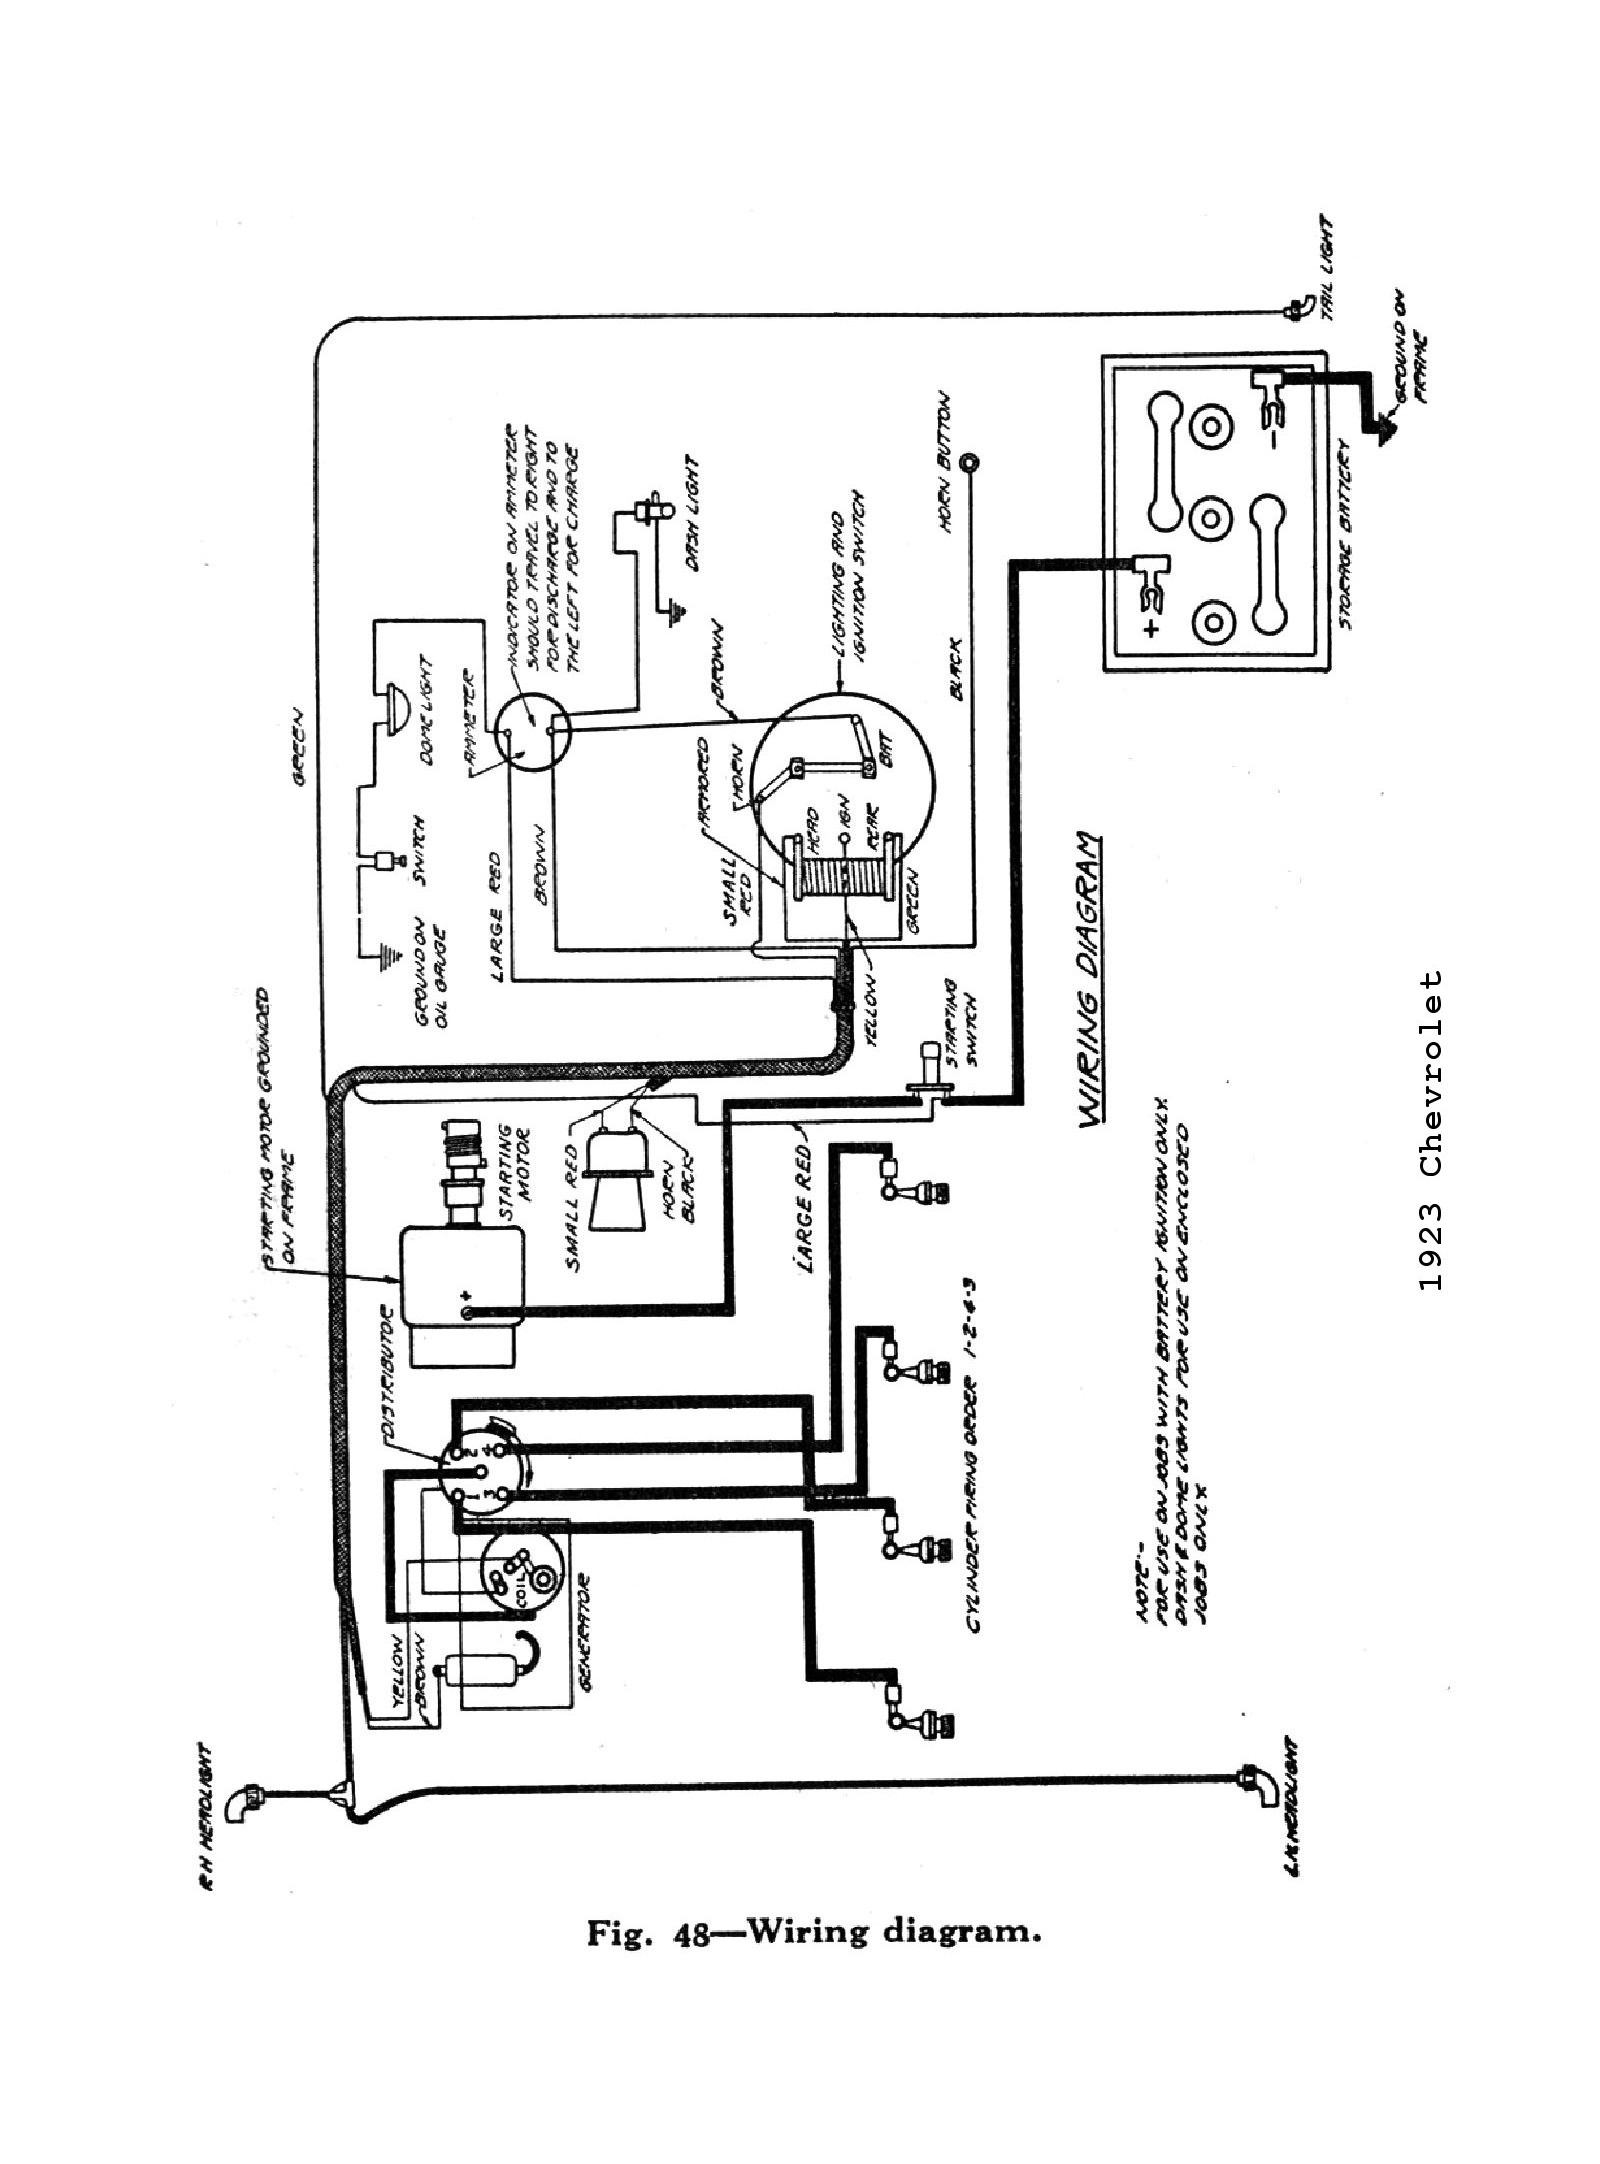 23model chevy truck wiring diagram 87 chevy truck wiring diagram \u2022 wiring Basic Turn Signal Wiring Diagram at edmiracle.co